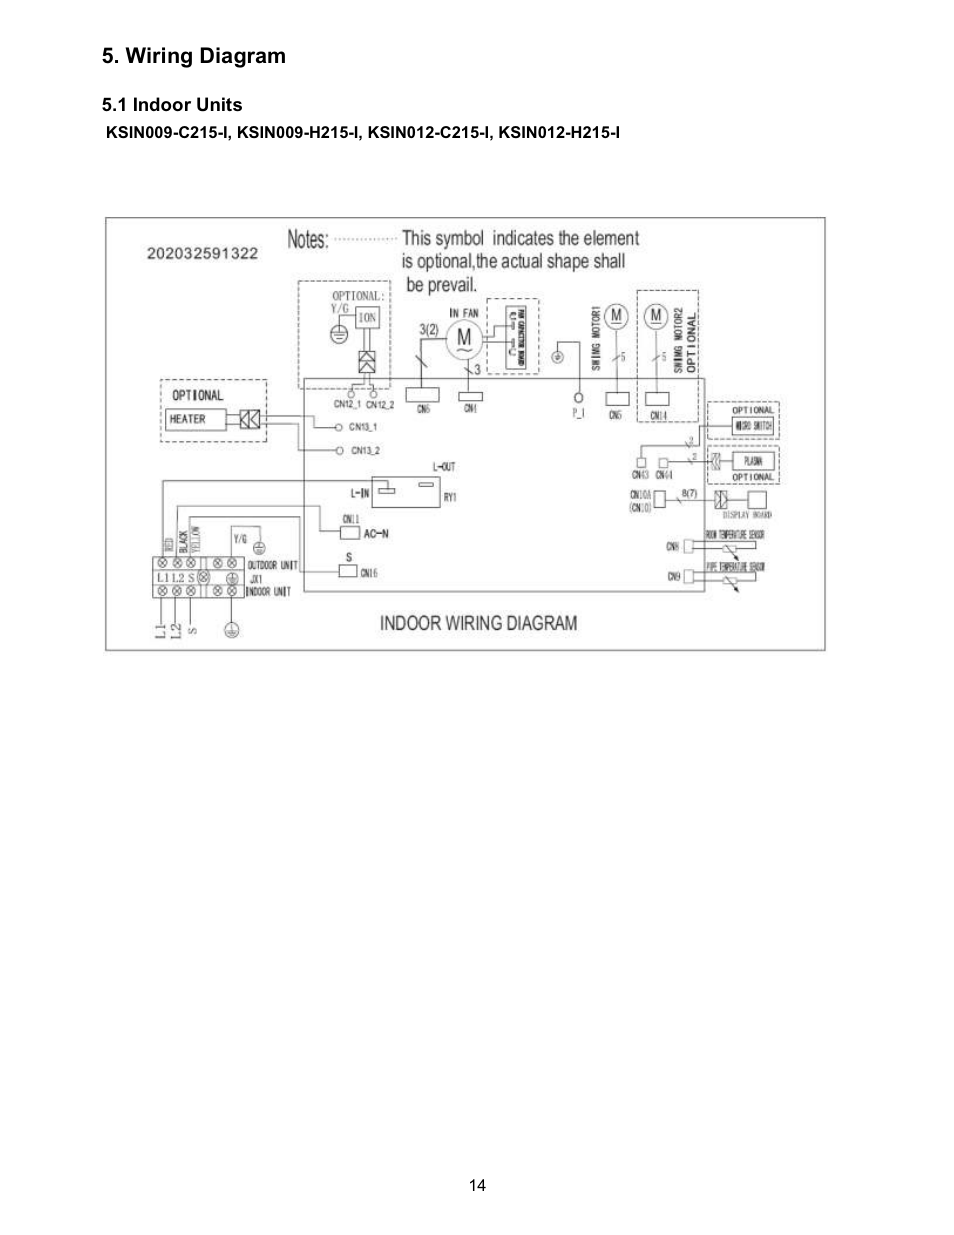 medium resolution of wiring diagram klimaire ksin series service manual user manual arcoaire parts diagram klimaire wiring diagram